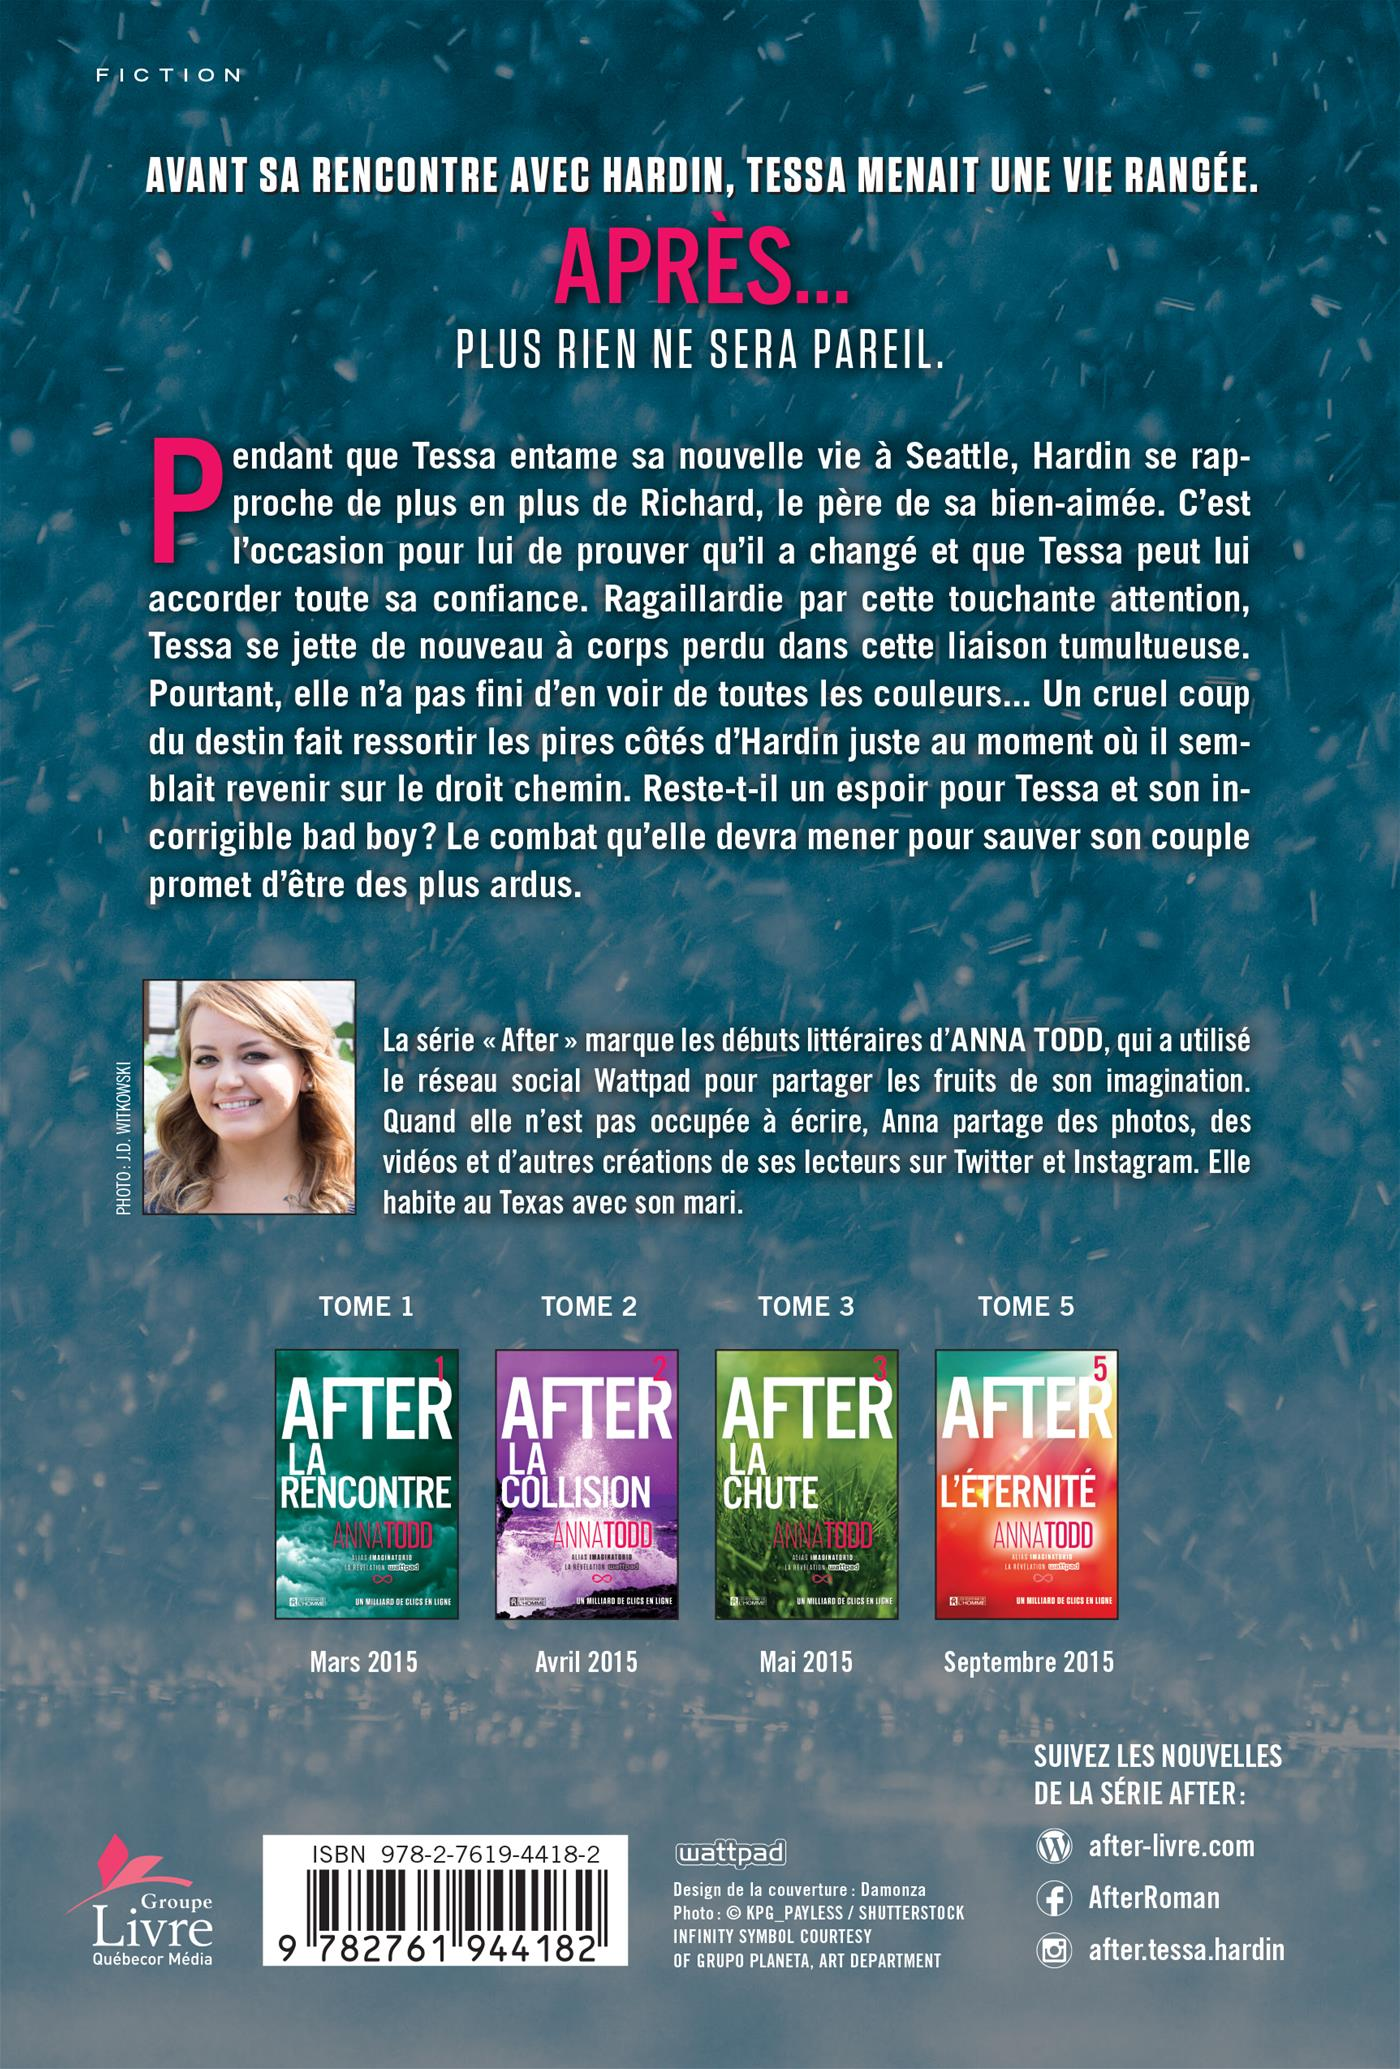 After T.4 : Le manque - Anna Todd revers